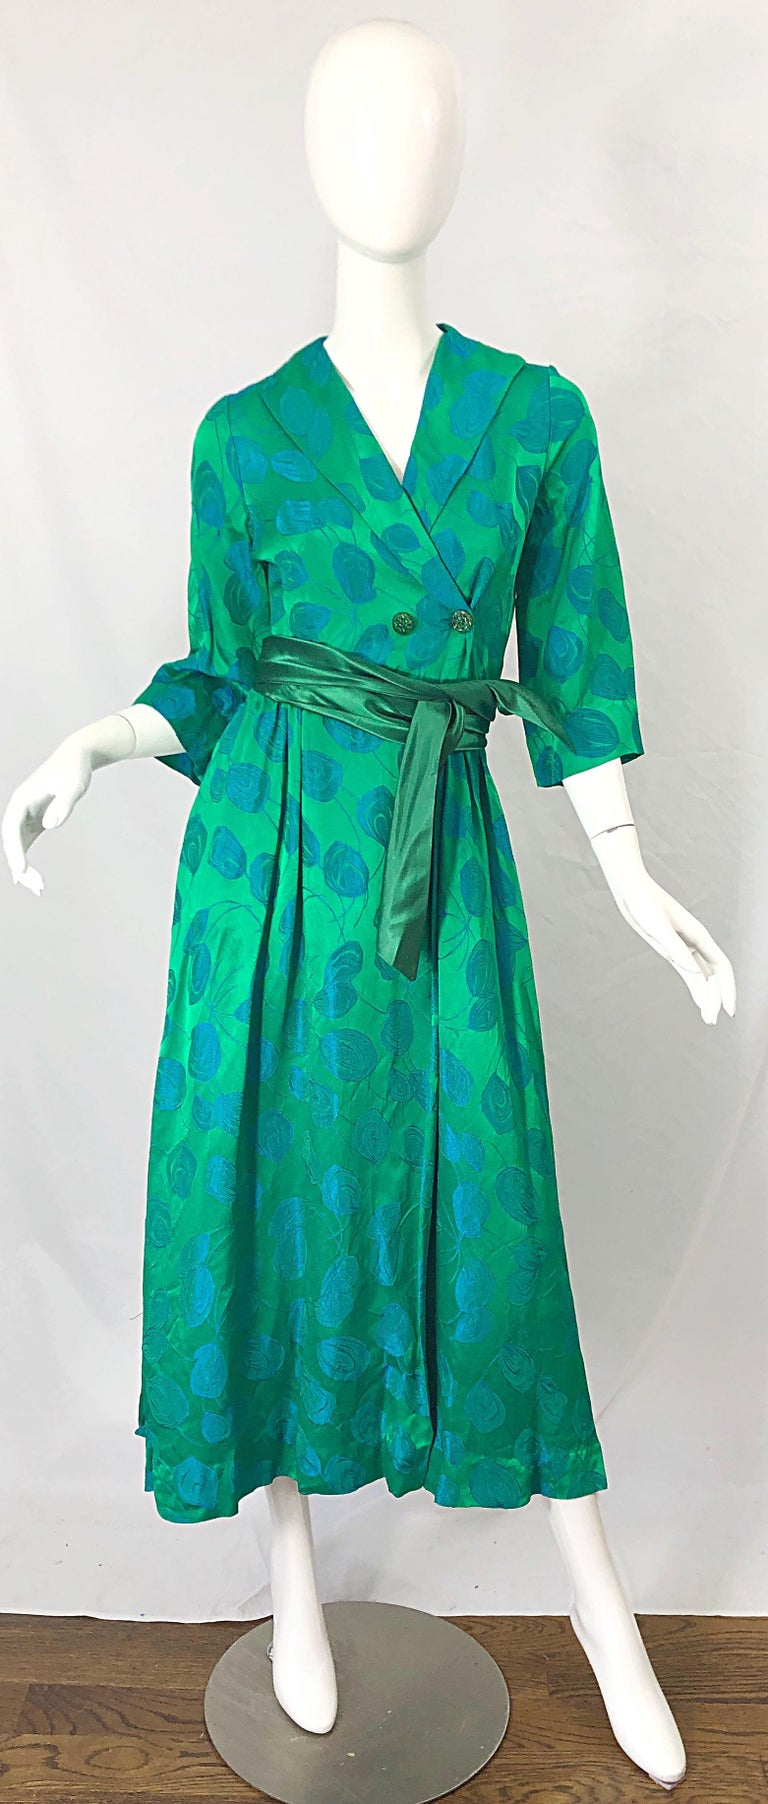 Beautiful vintage 1950s kelly green and blue flower print wrap dress ! Wrap style with interior ties and green rhinestone encrusted buttons. Shawl style collar. Long detachable silk belt. Blue abstract flowers printed throughout. Perfect for any day